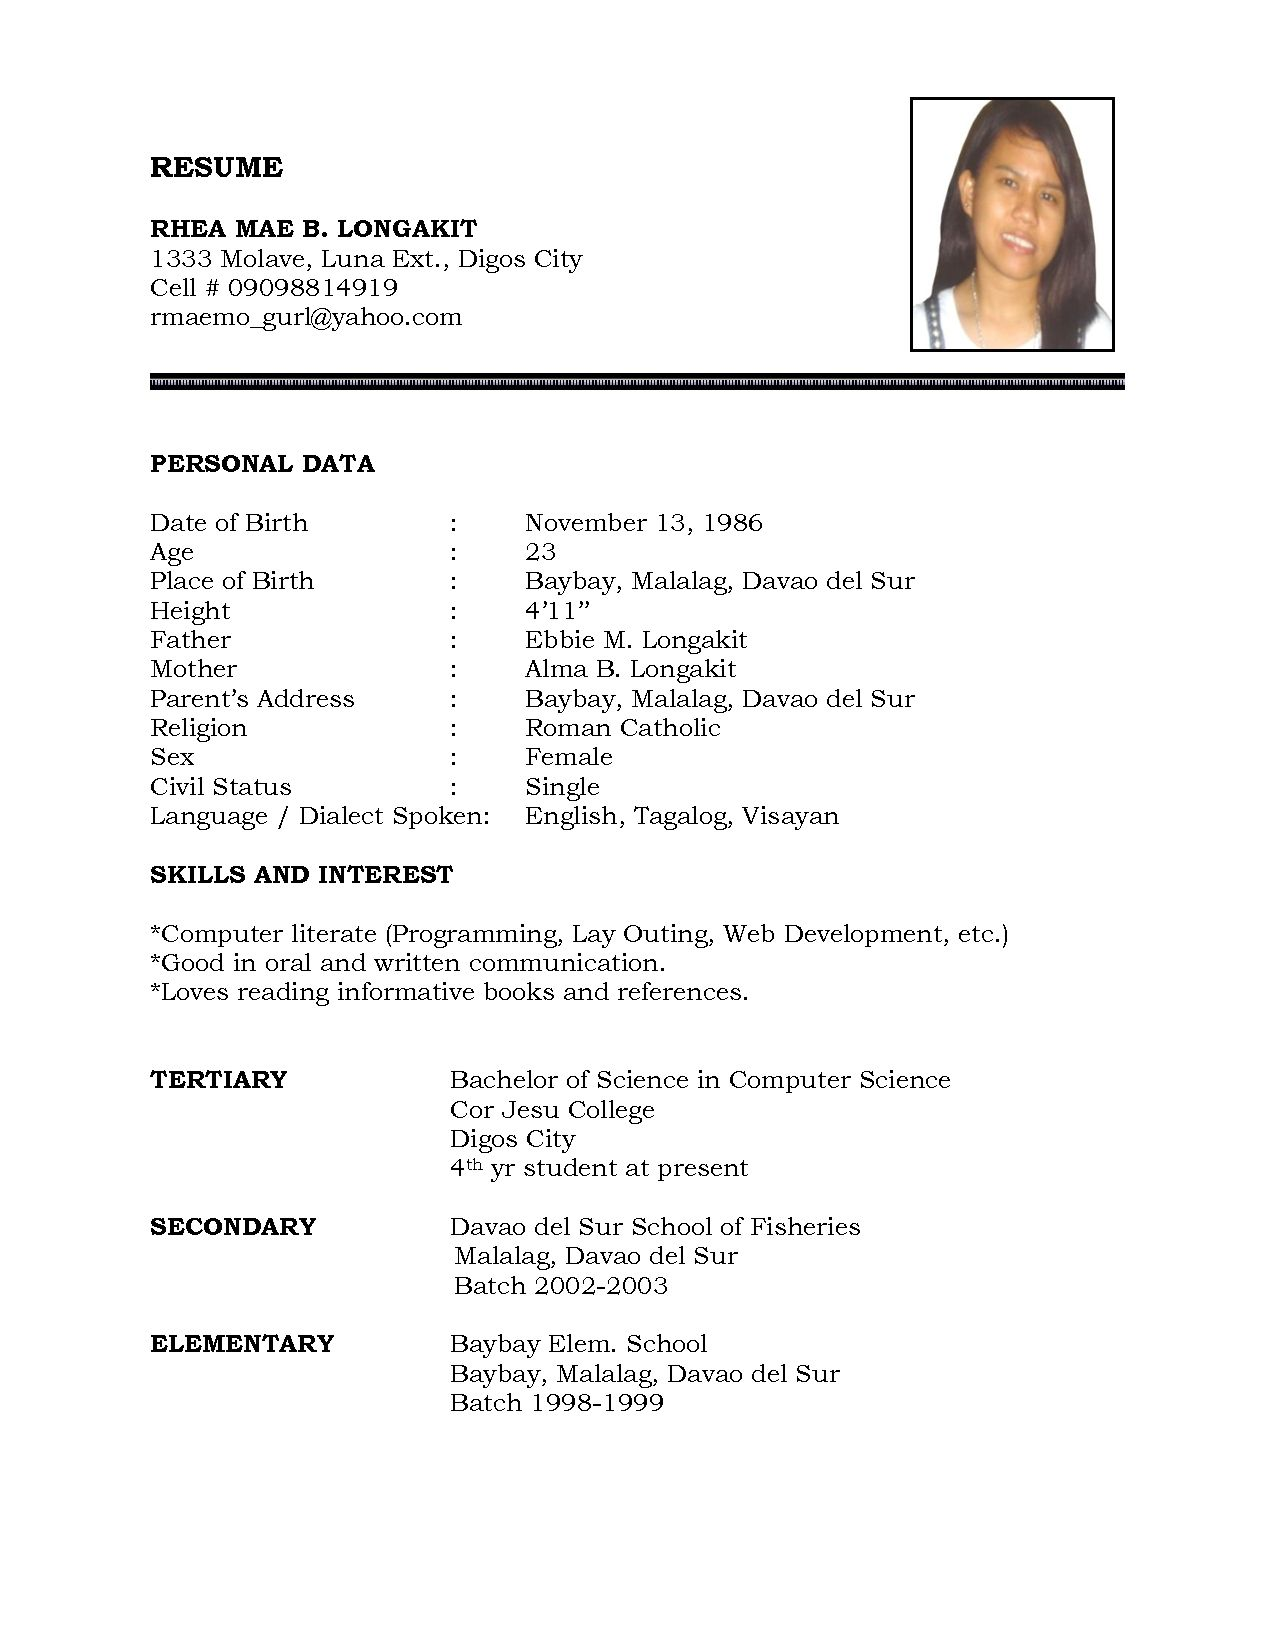 resume sample simple de9e2a60f the simple format of resume for job - Samples Of Simple Resumes